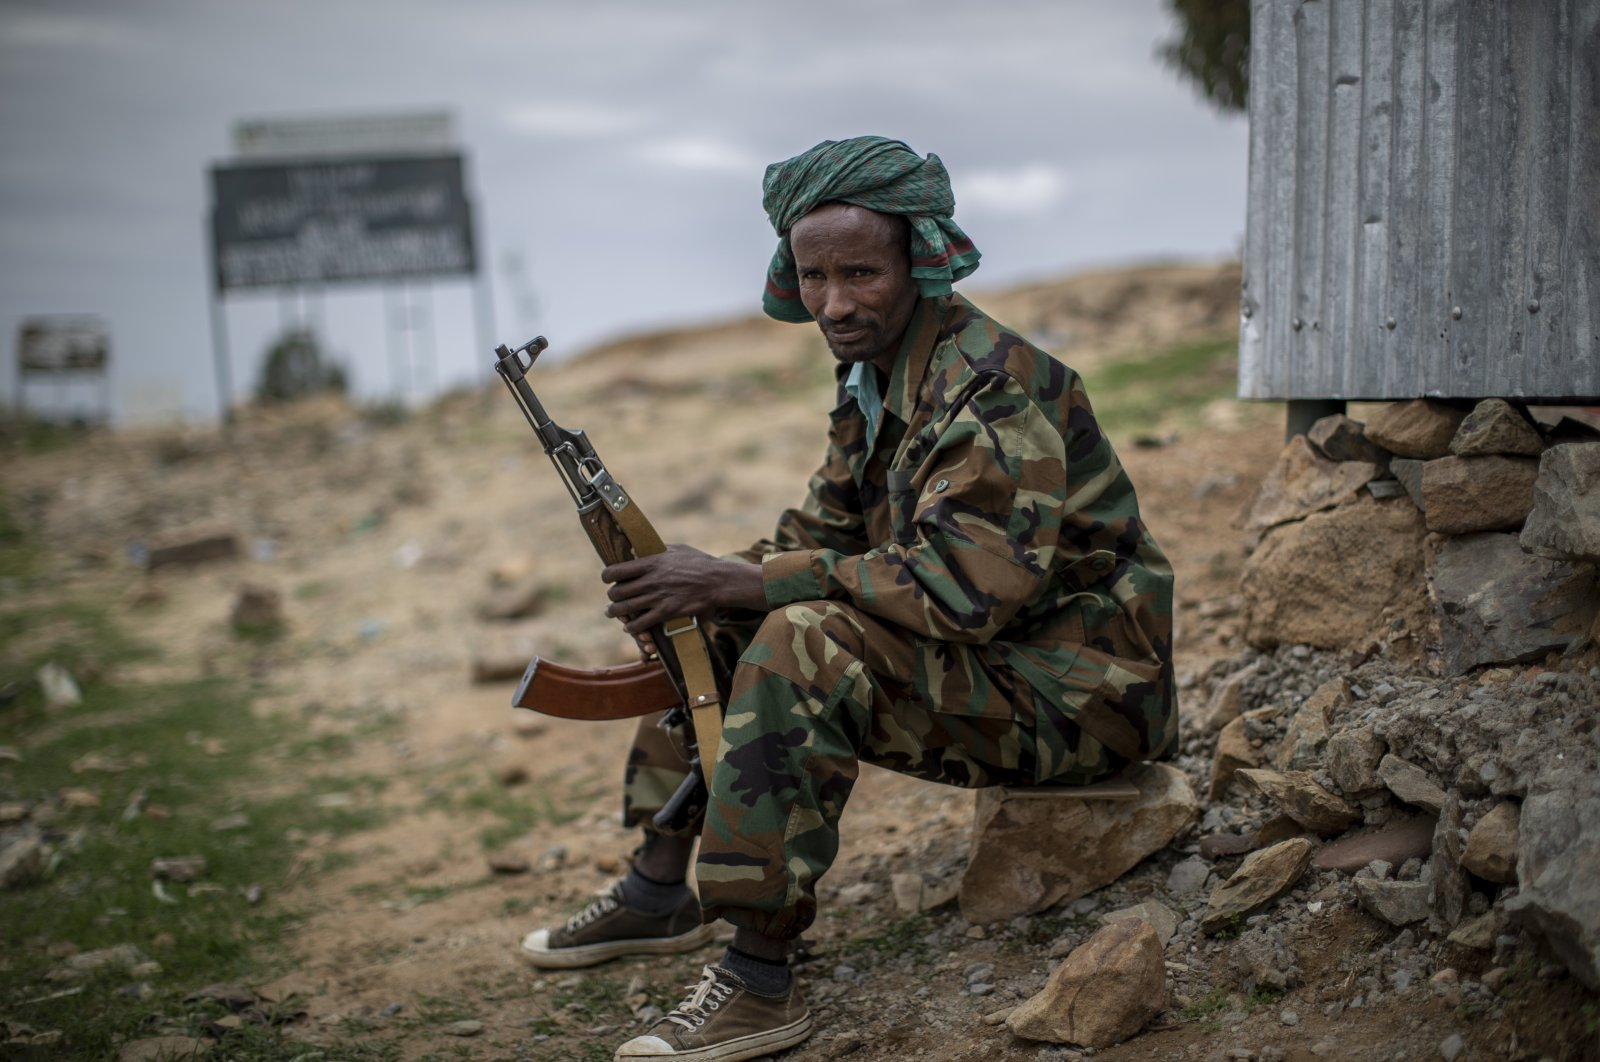 A fighter loyal to the Tigray People's Liberation Front (TPLF) mans a guard post on the outskirts of the town of Hawzen, then controlled by the group but later retaken by government forces, in the Tigray region of northern Ethiopia, May 7, 2021. (AP Photo)